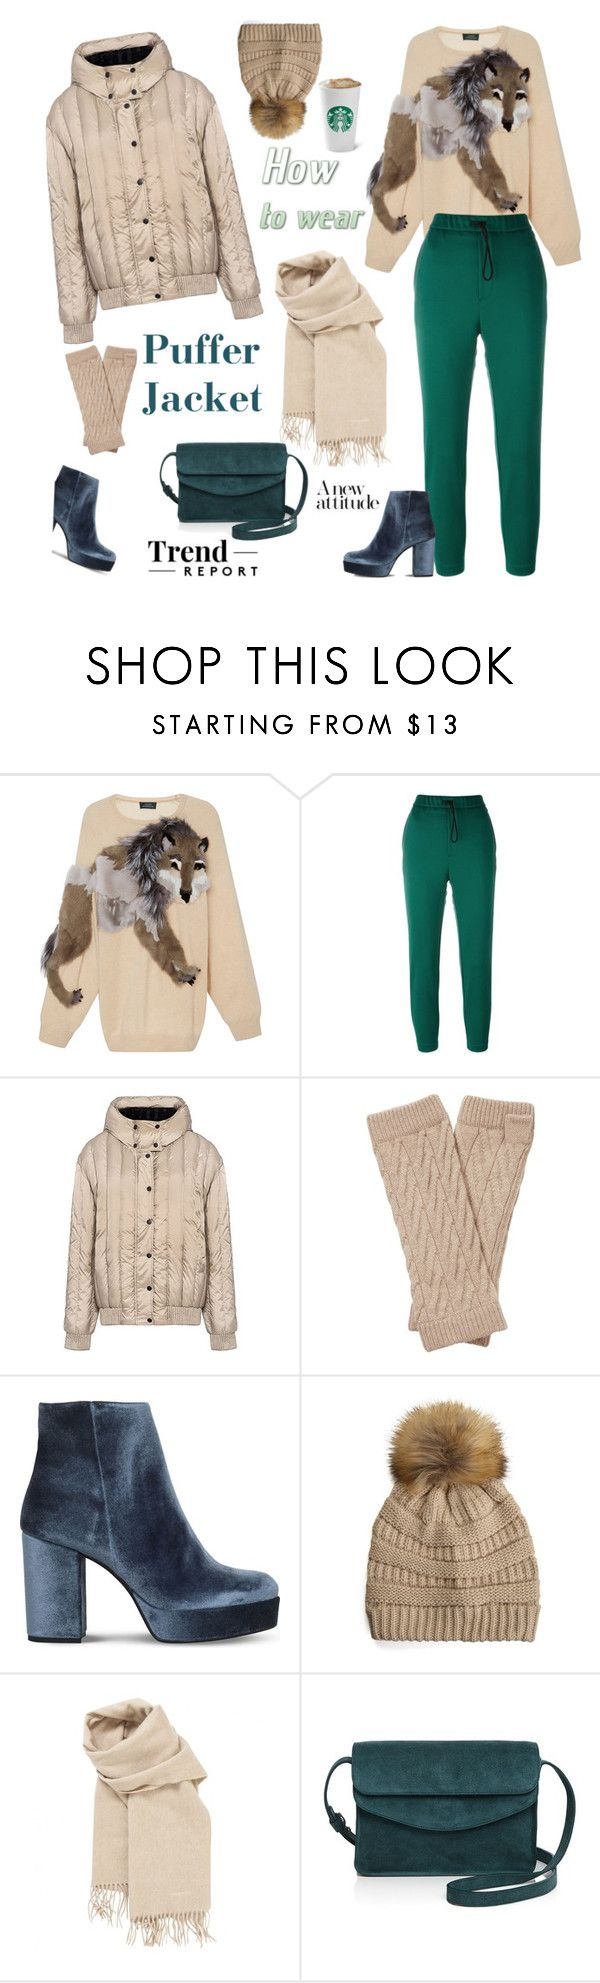 """""""Perfect Puffer Jackets"""" by ellie366 ❤ liked on Polyvore featuring Alena Akhmadullina, Golden Goose, Carven, Pure Collection, Carvela, Hermès, Illesteva, scarf, cashmere and winterstyle"""